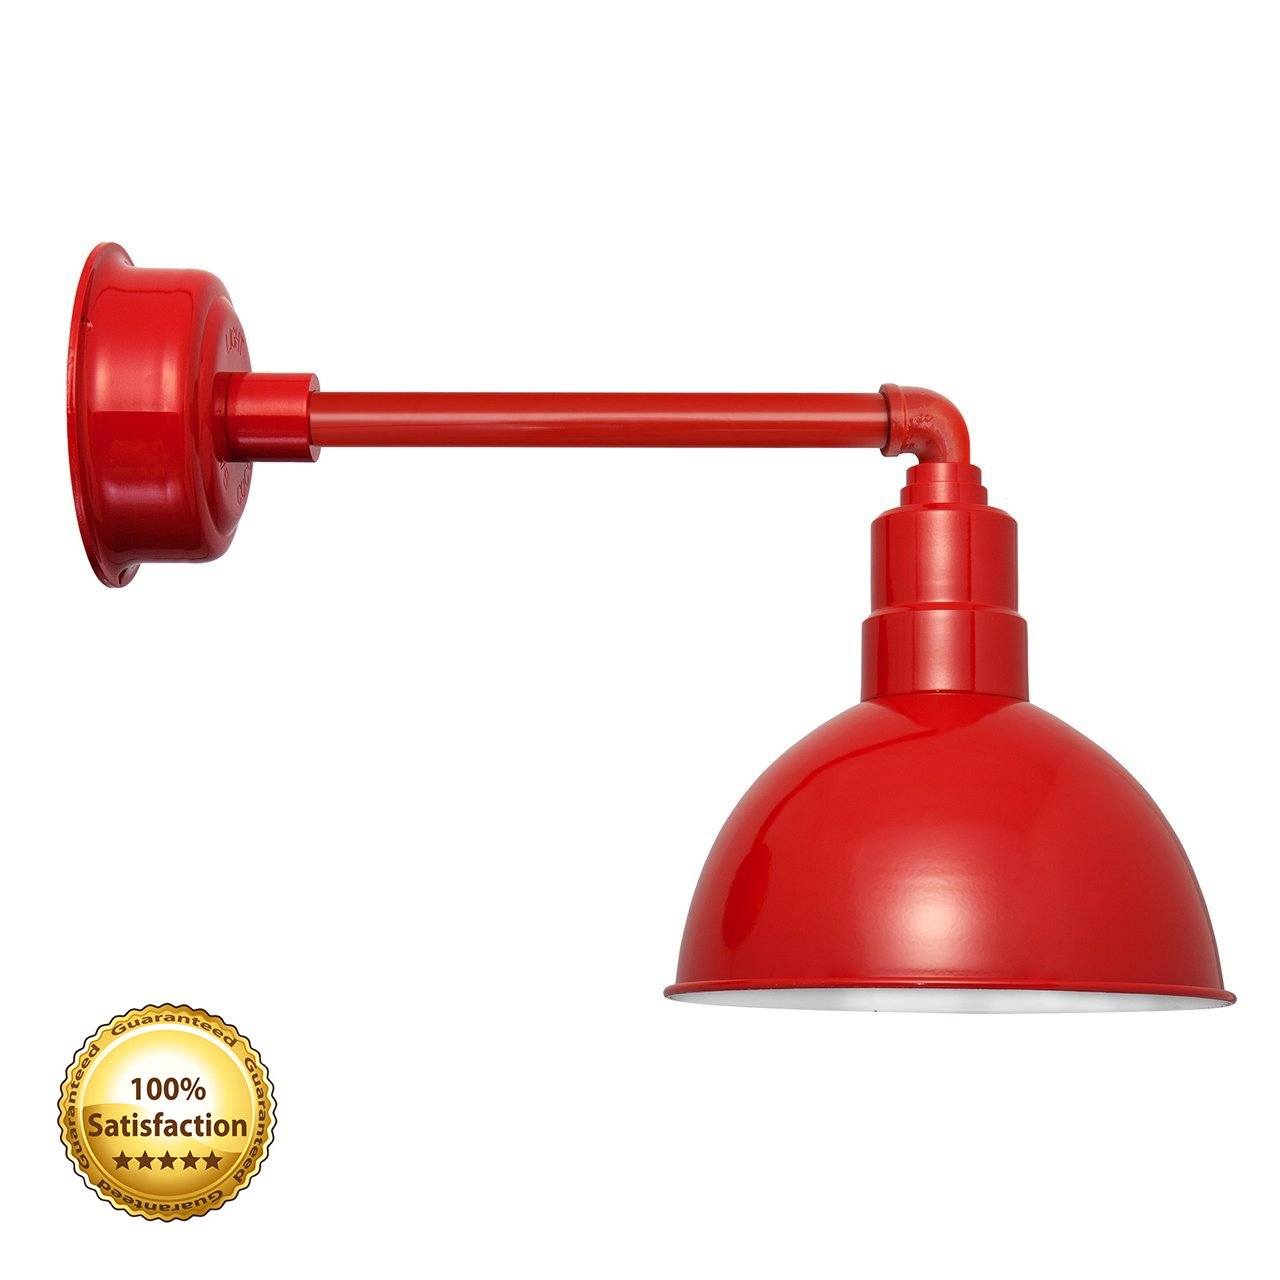 Cocoweb 8 inch Red Blackspot LED dimmable gooseneck barn light wall sconce fixture with metropolitan arm - BBSW8CR-1R